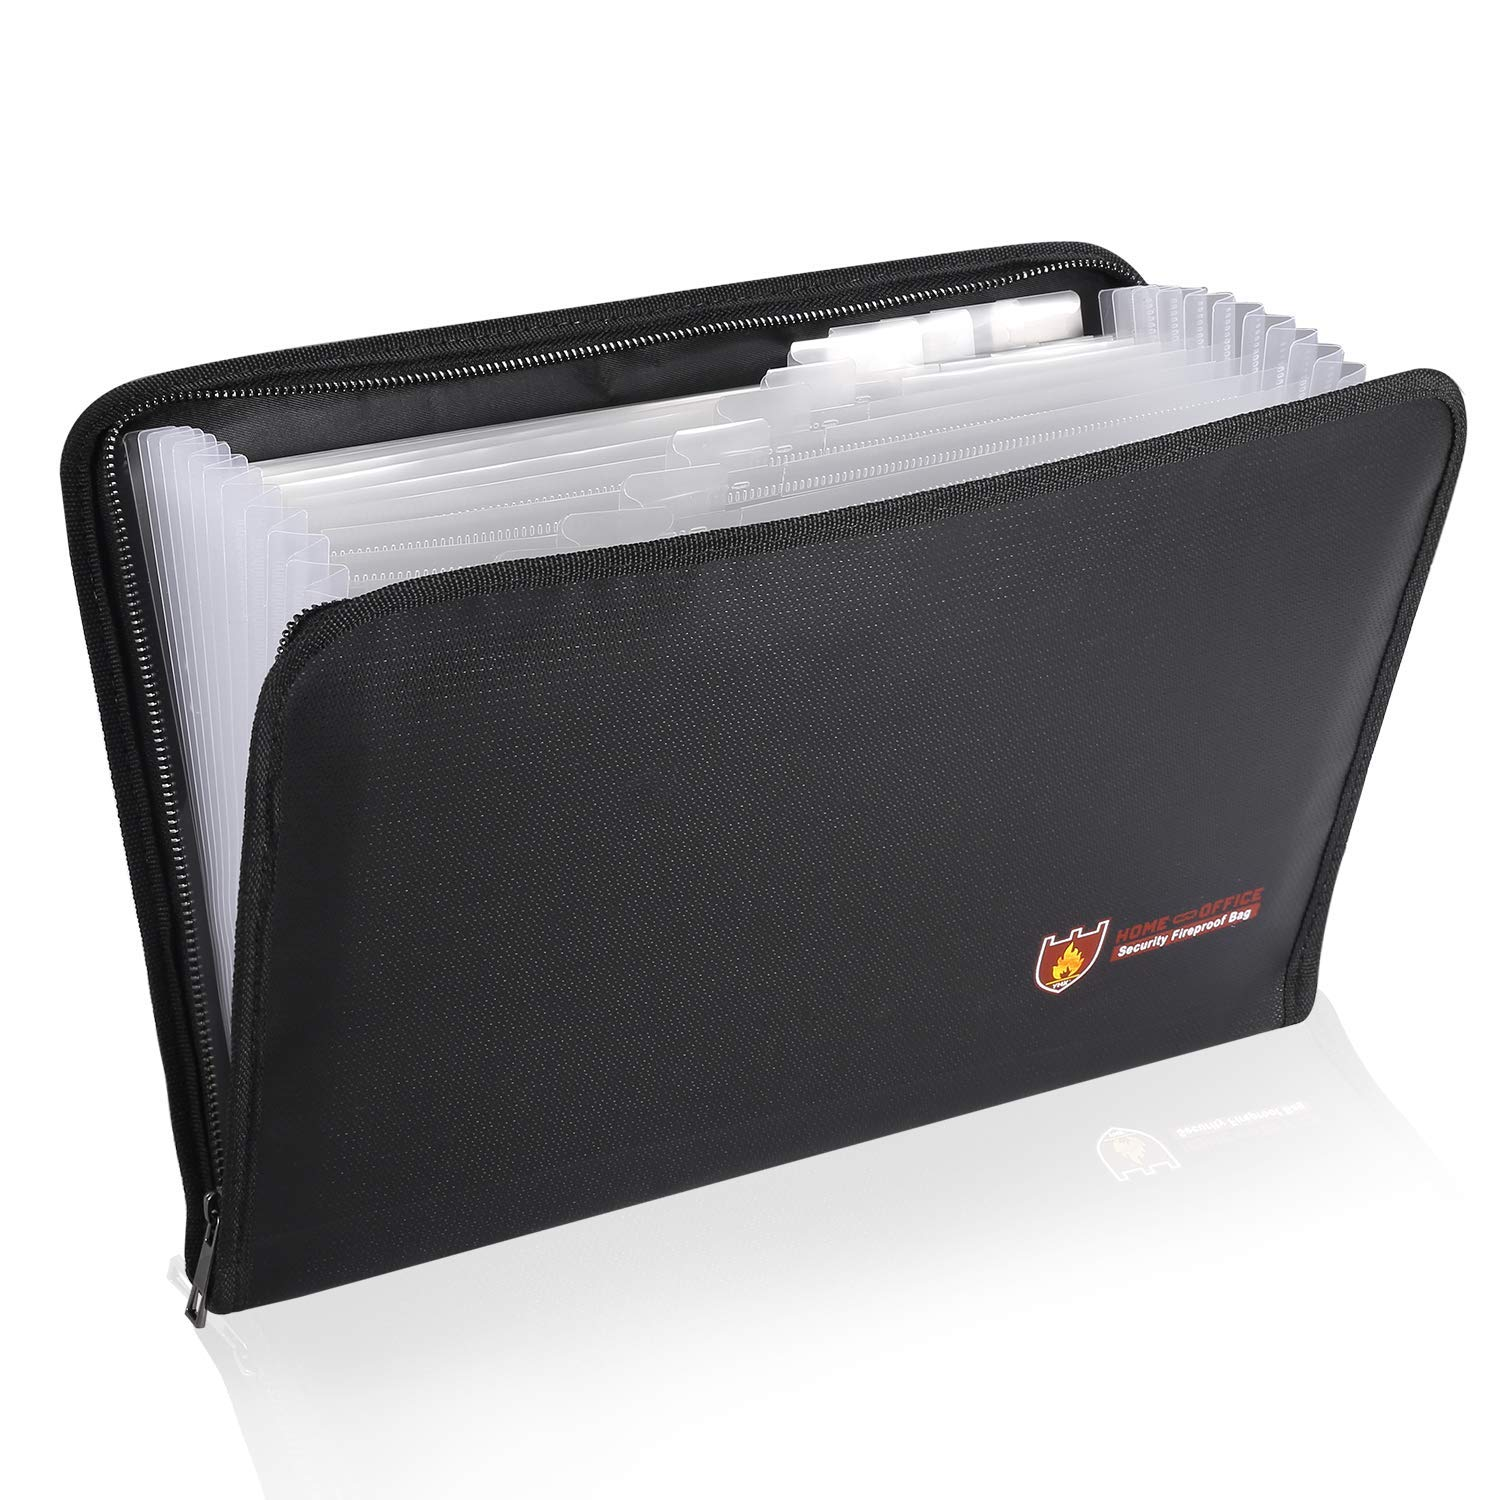 Expanding Fireproof Accordion Document Bags File Folder A4 Size 12 Pockets Non-Itchy Silicone Coated Fire Resistant Money Storage Bags Portable Filing Organizer (14.3x9.8 inch)